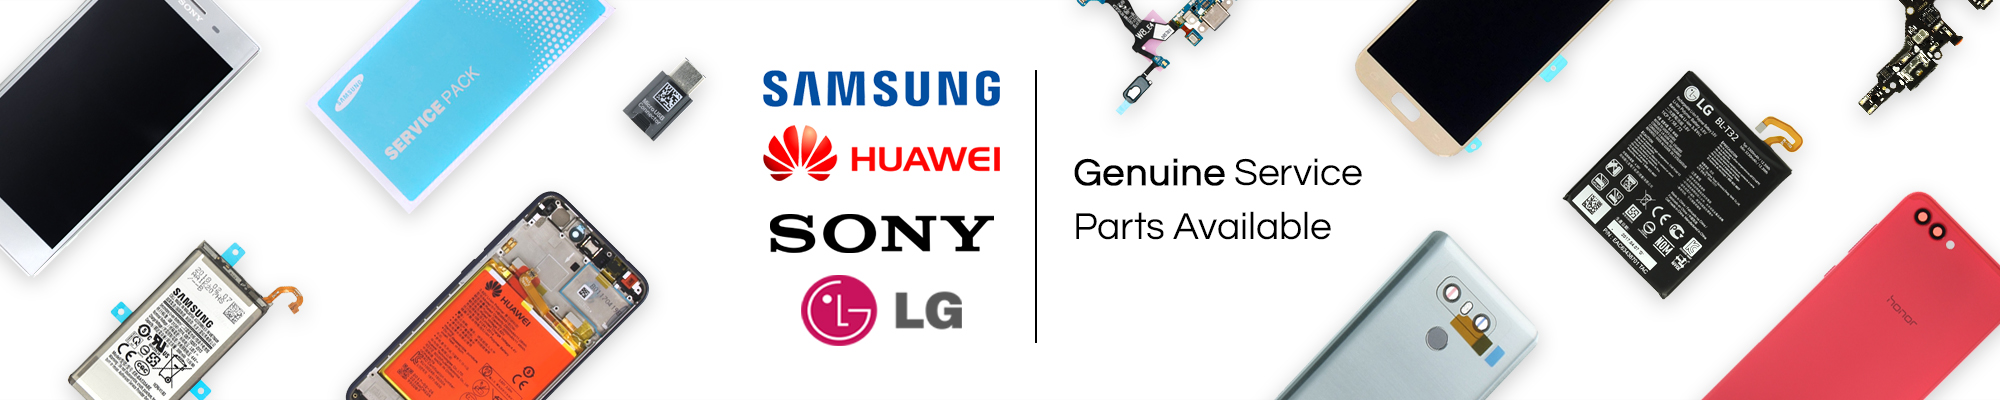 Original Service Parts available for Samsung, Huawei, LG, Sony at GSM Parts Center